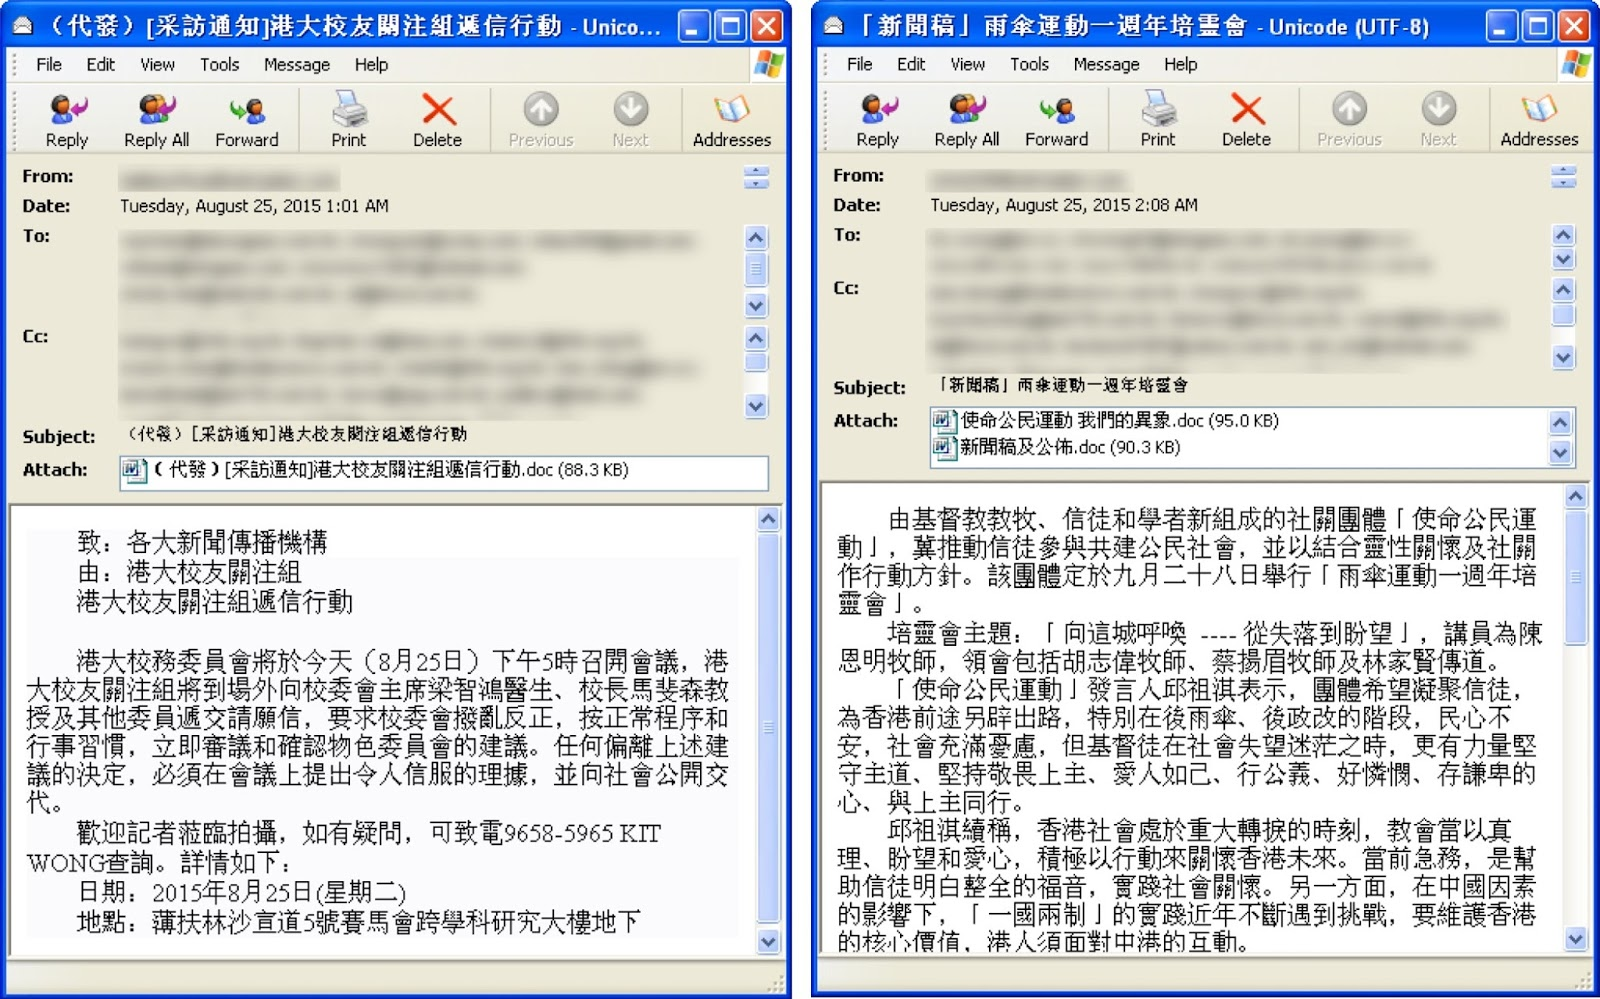 Chinese APT Group Attacked Hong Kong Media Outlets